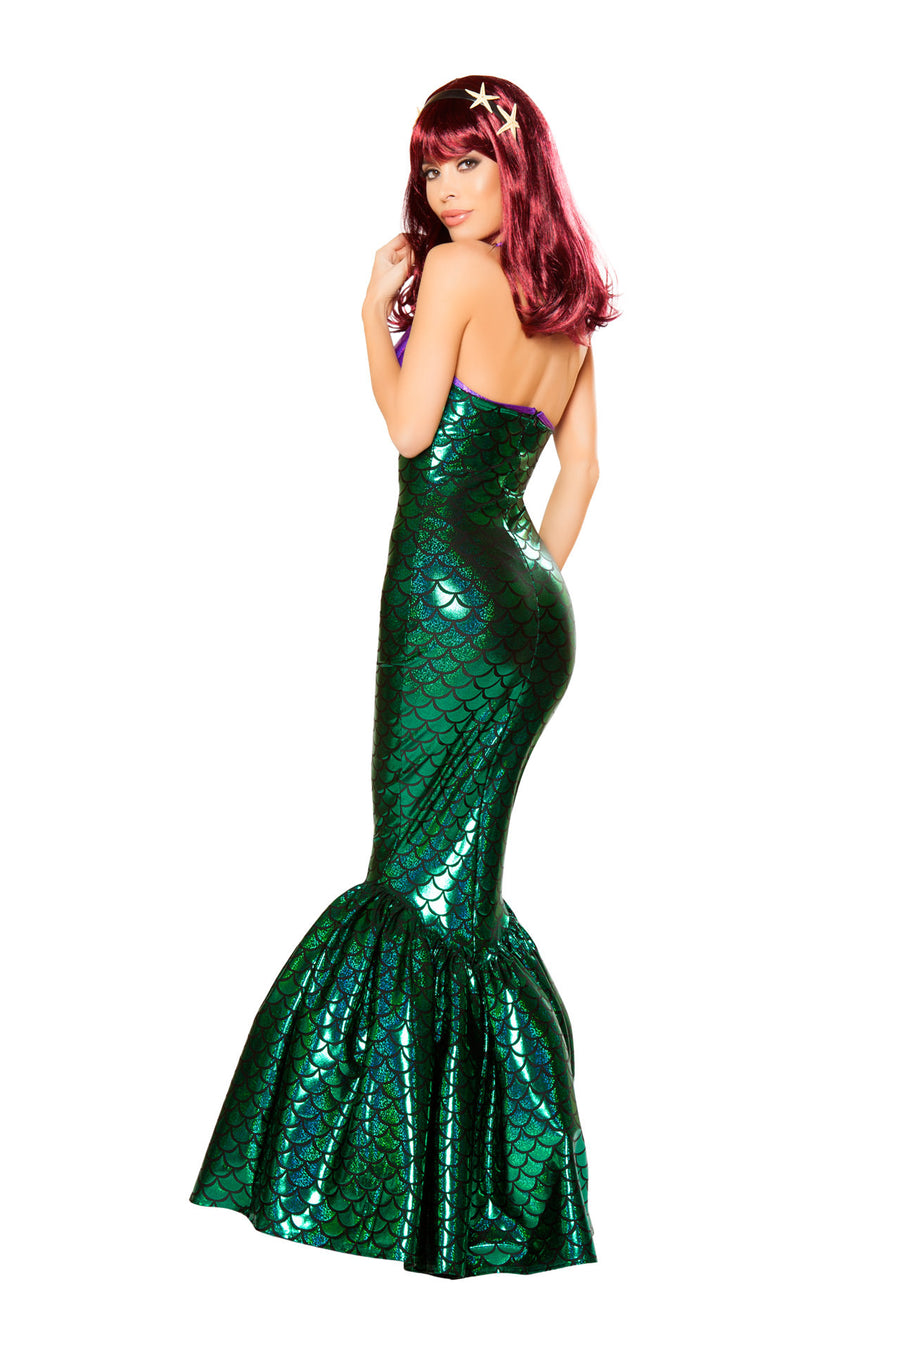 10076 - 1pc Mermaid Temptress ${description} | Roma Costume and Roma Confidential wholesale manufacturer of Women Apparel bulk world wide wholesale and world wide drop ship services for Adult Halloween Costumes, Sexy and Elegant Lingerie, Rave Clothing, Club wear, and Christmas Costumes. Costumes, Blowout Sale, Roma Costume, Inc., Roma Costume, Roma Confidential, Wholesale clothing, drop ship, drop ship service, Wholesale Lingerie, Wholesale Adult Halloween Costumes, Rave Clothing, EDM Clothing, Festival Wear, Christmas Costumes, Clubwear, Club wear.